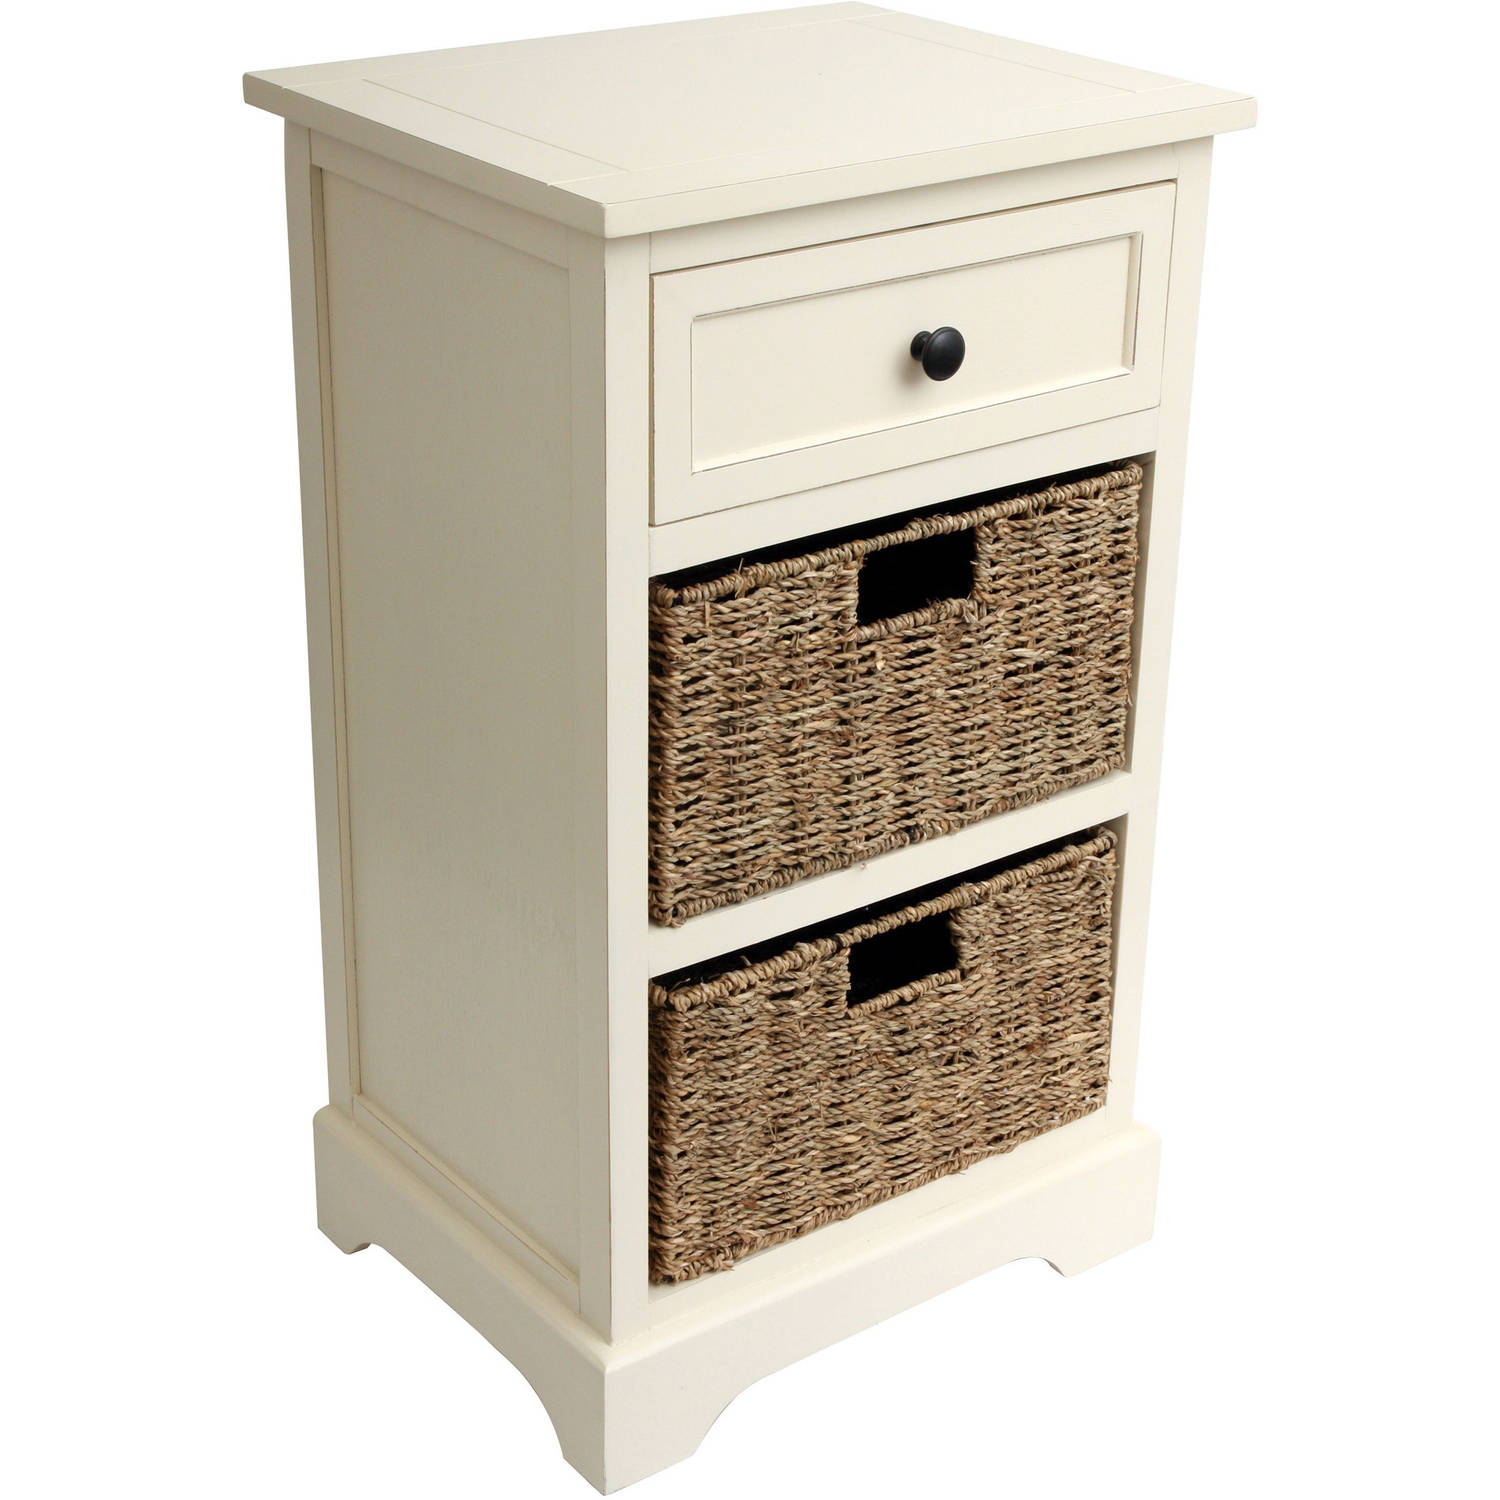 Sophia 2-Basket Storage Chest with Drawer, Multiple Finishes